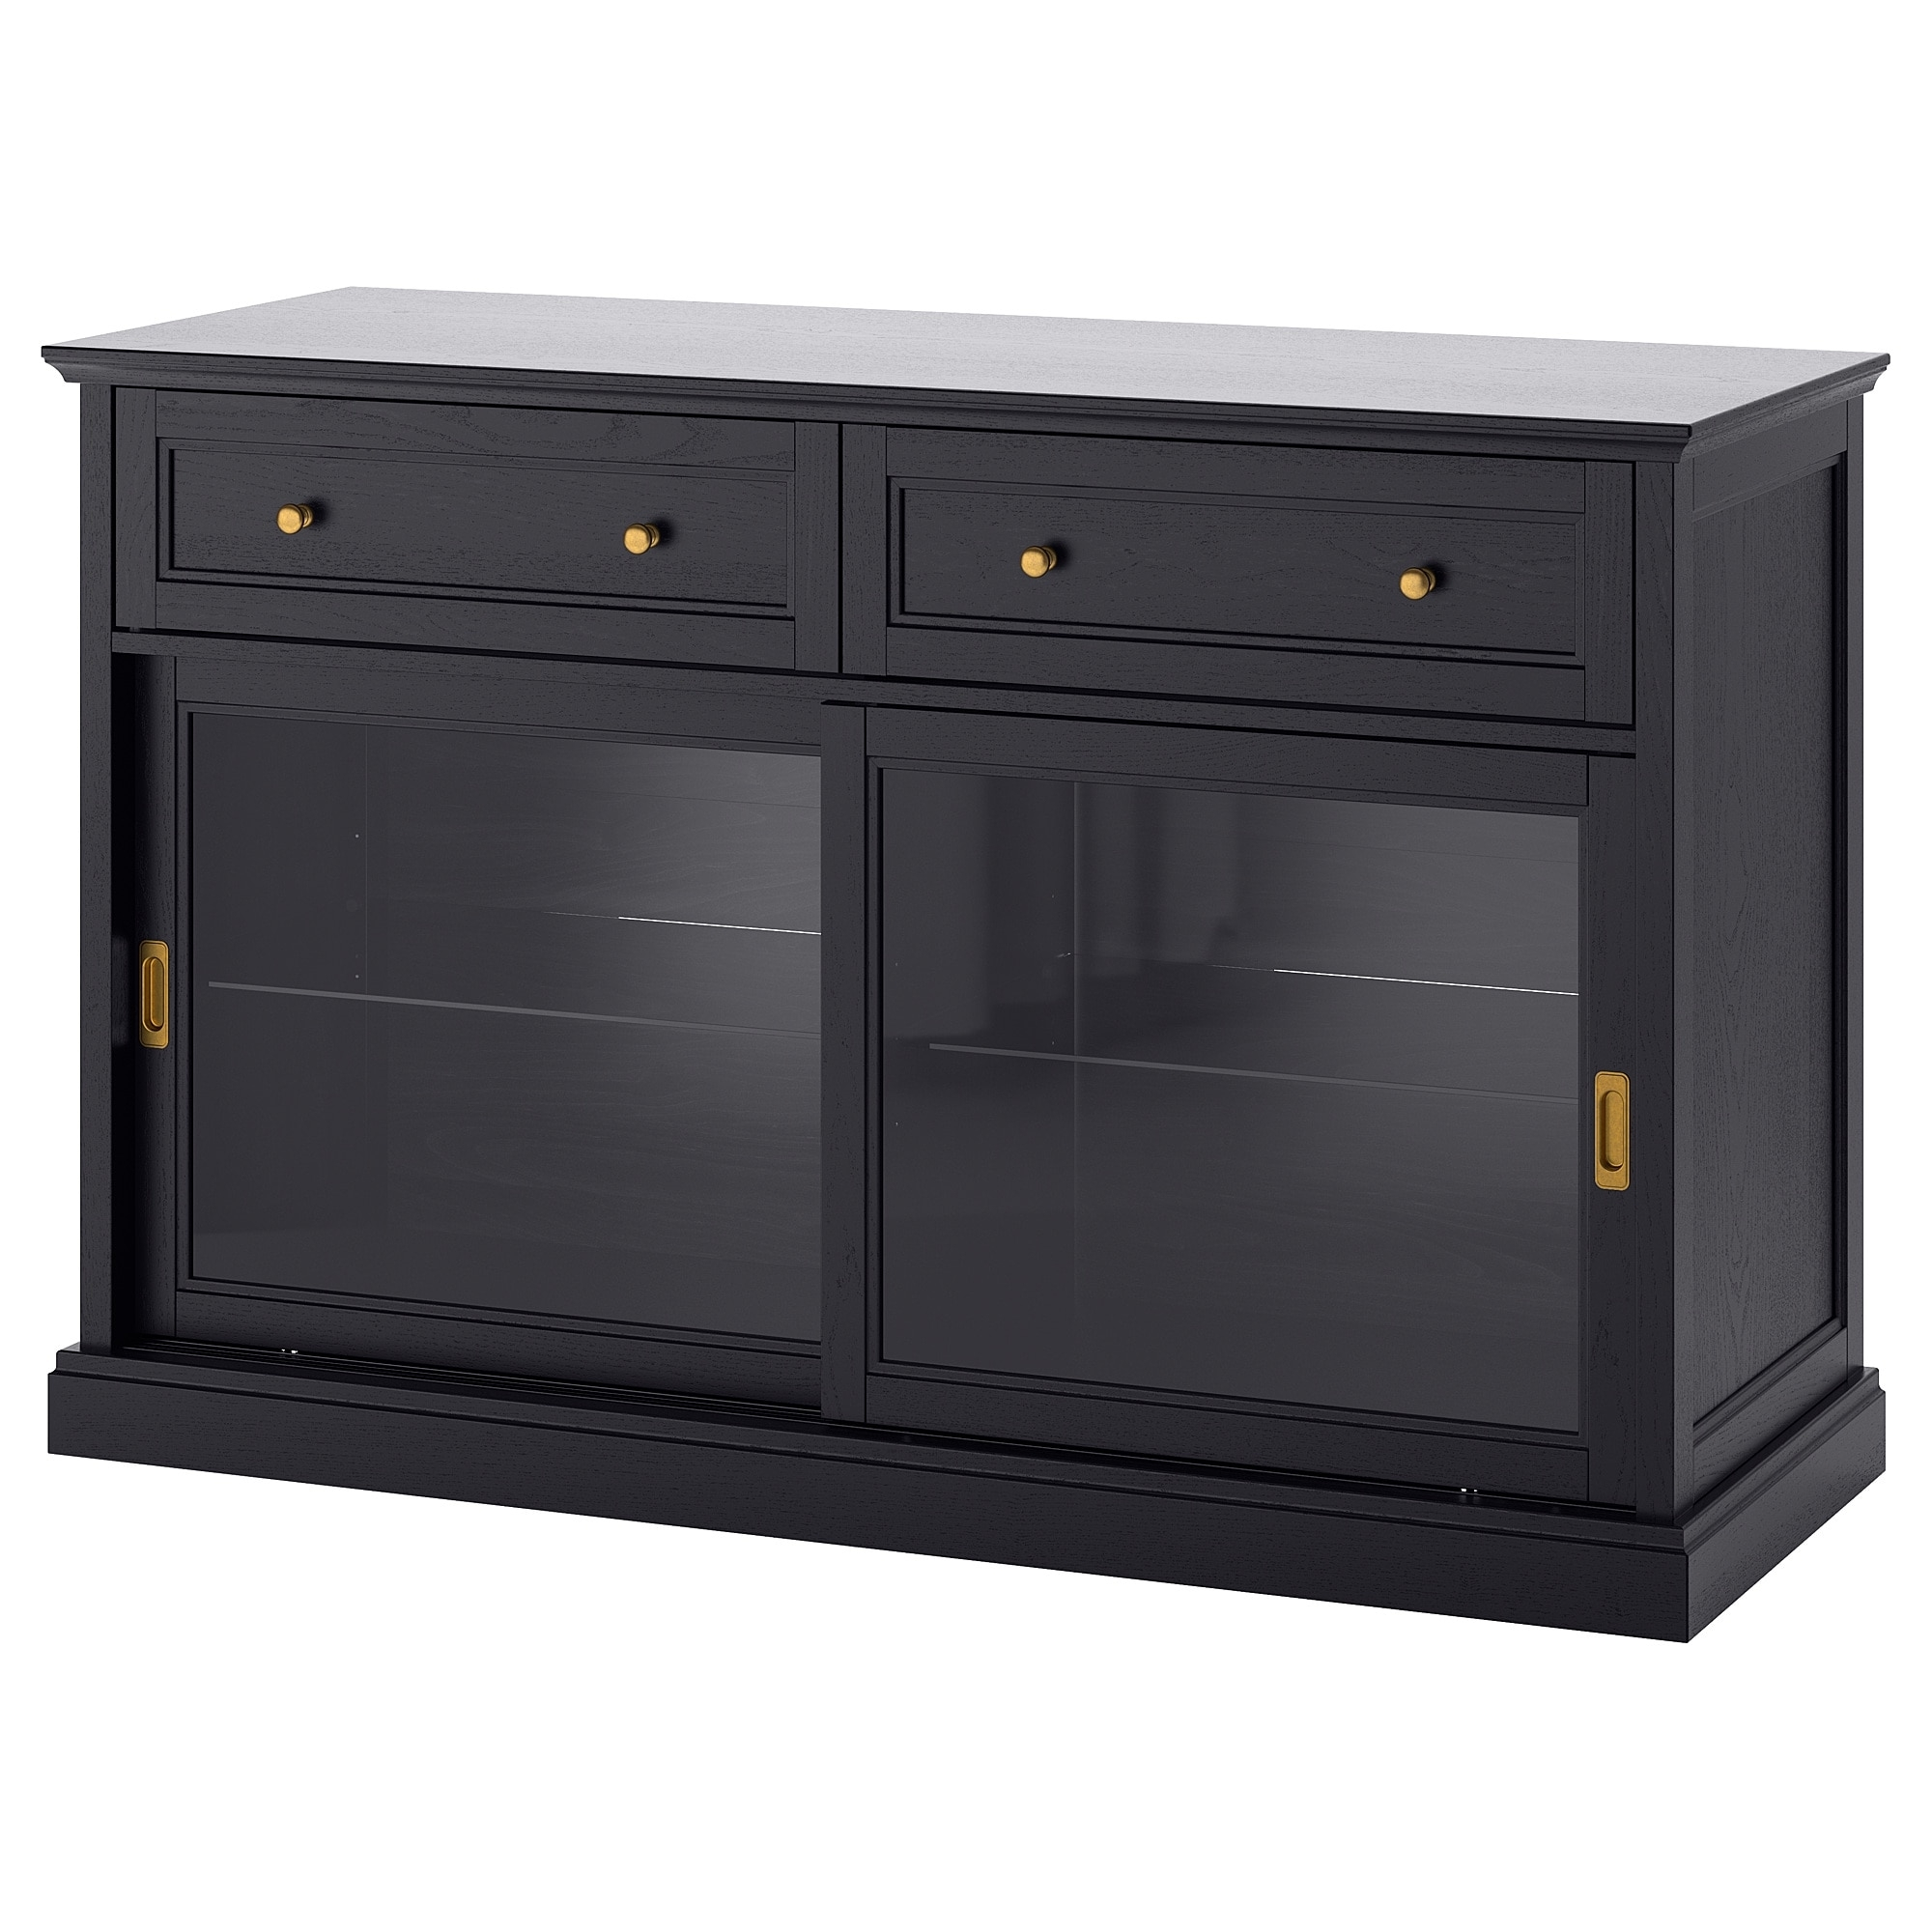 Sideboards & Buffet Cabinets | Ikea With Most Recent Blue Stone Light Rustic Black Sideboards (#17 of 20)